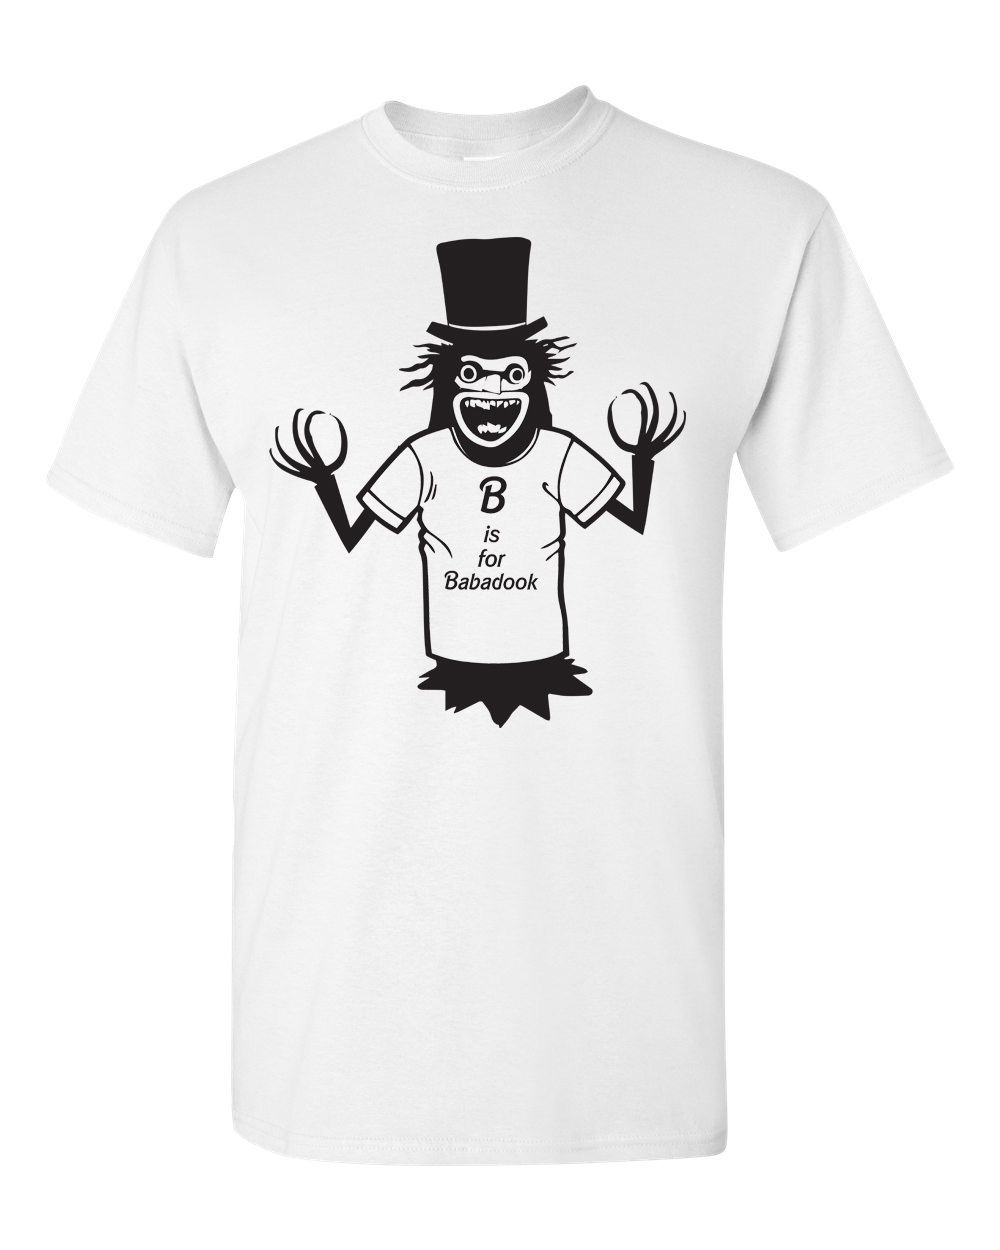 The Babadook Dook GAY LGBT Horror Movie Scary Halloween Men's Tee Shirt 1647 custom printed tshirt Comfortable t shirt image